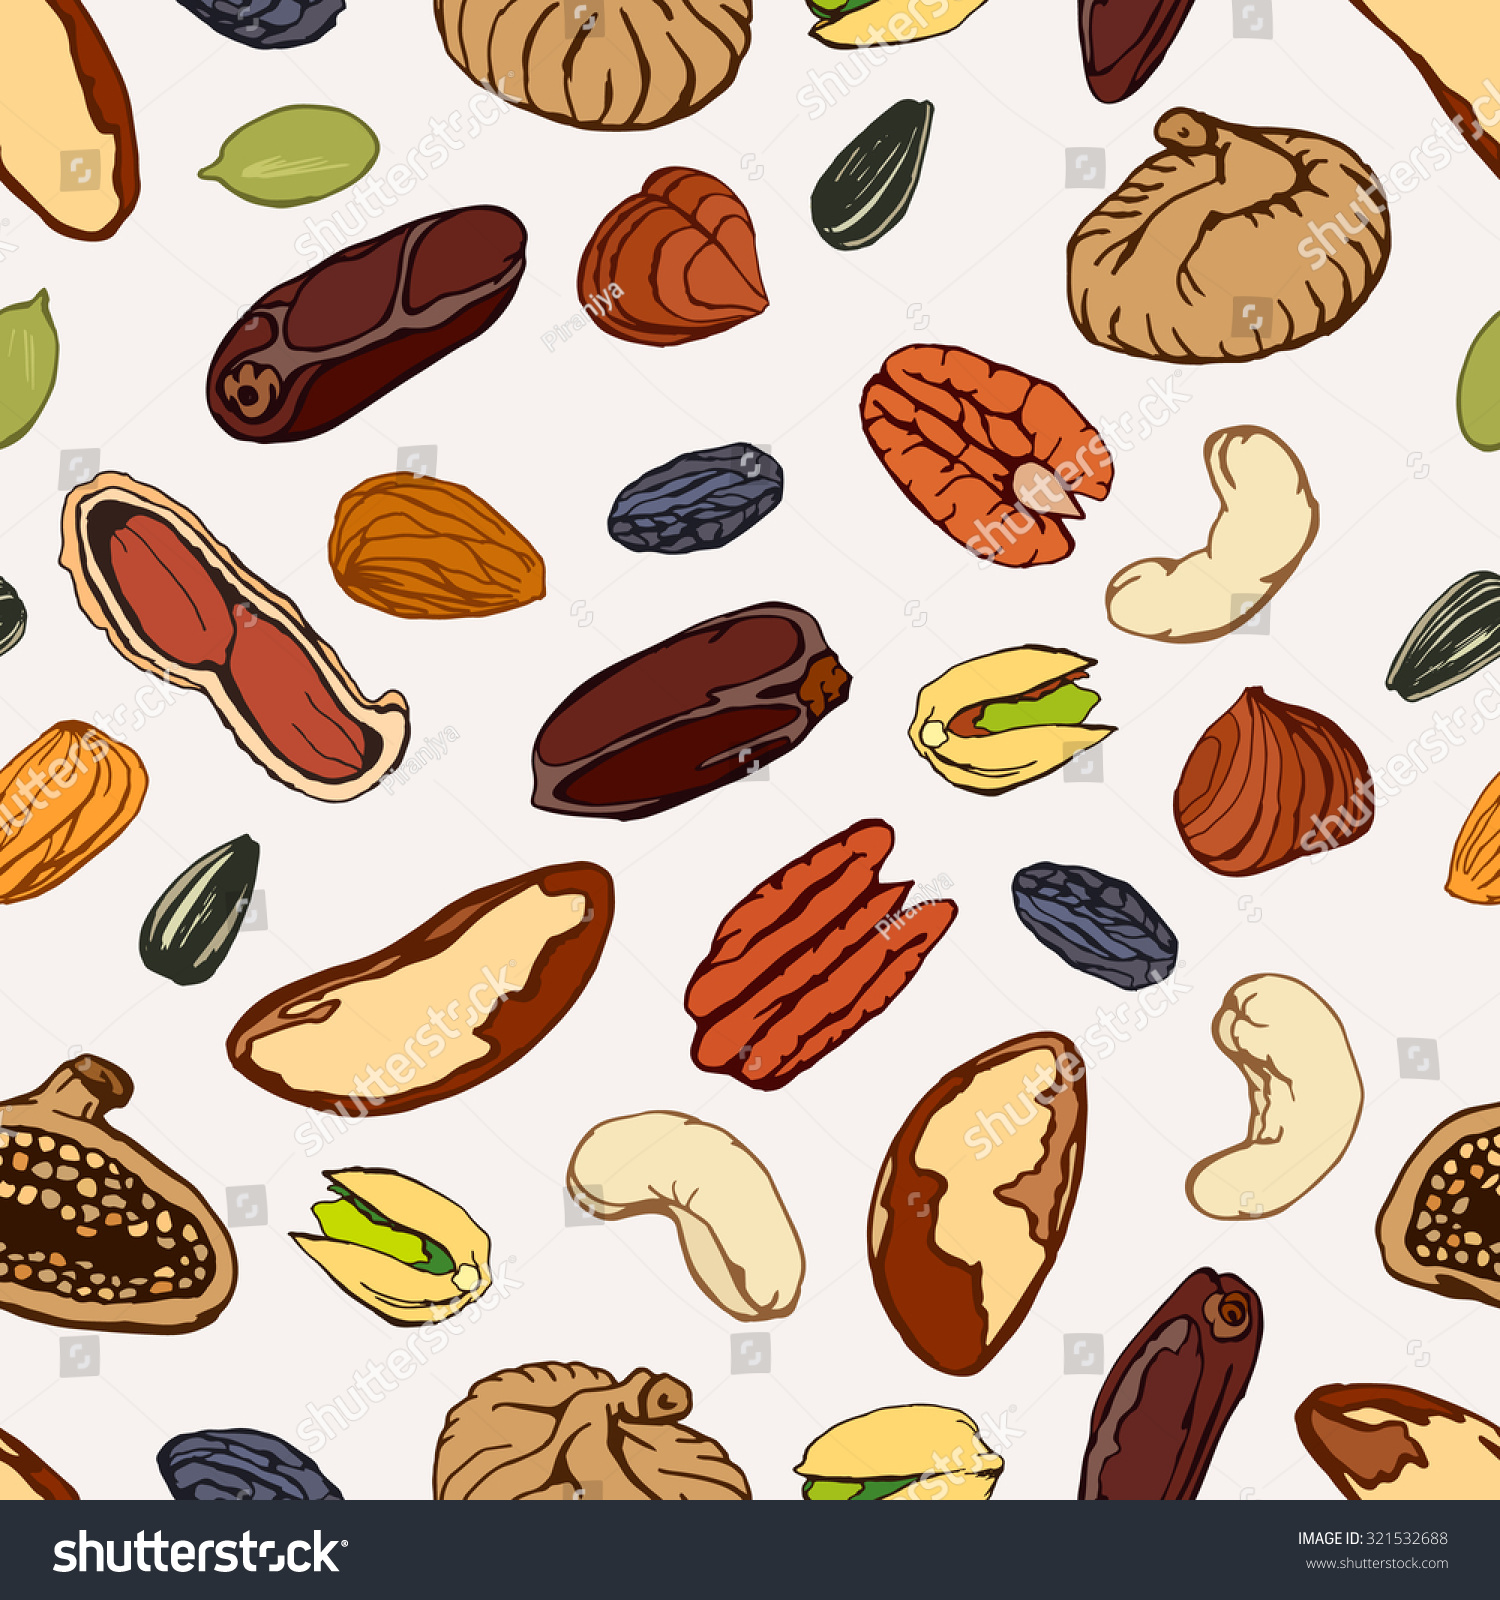 david sunflower seeds clipart - photo #13